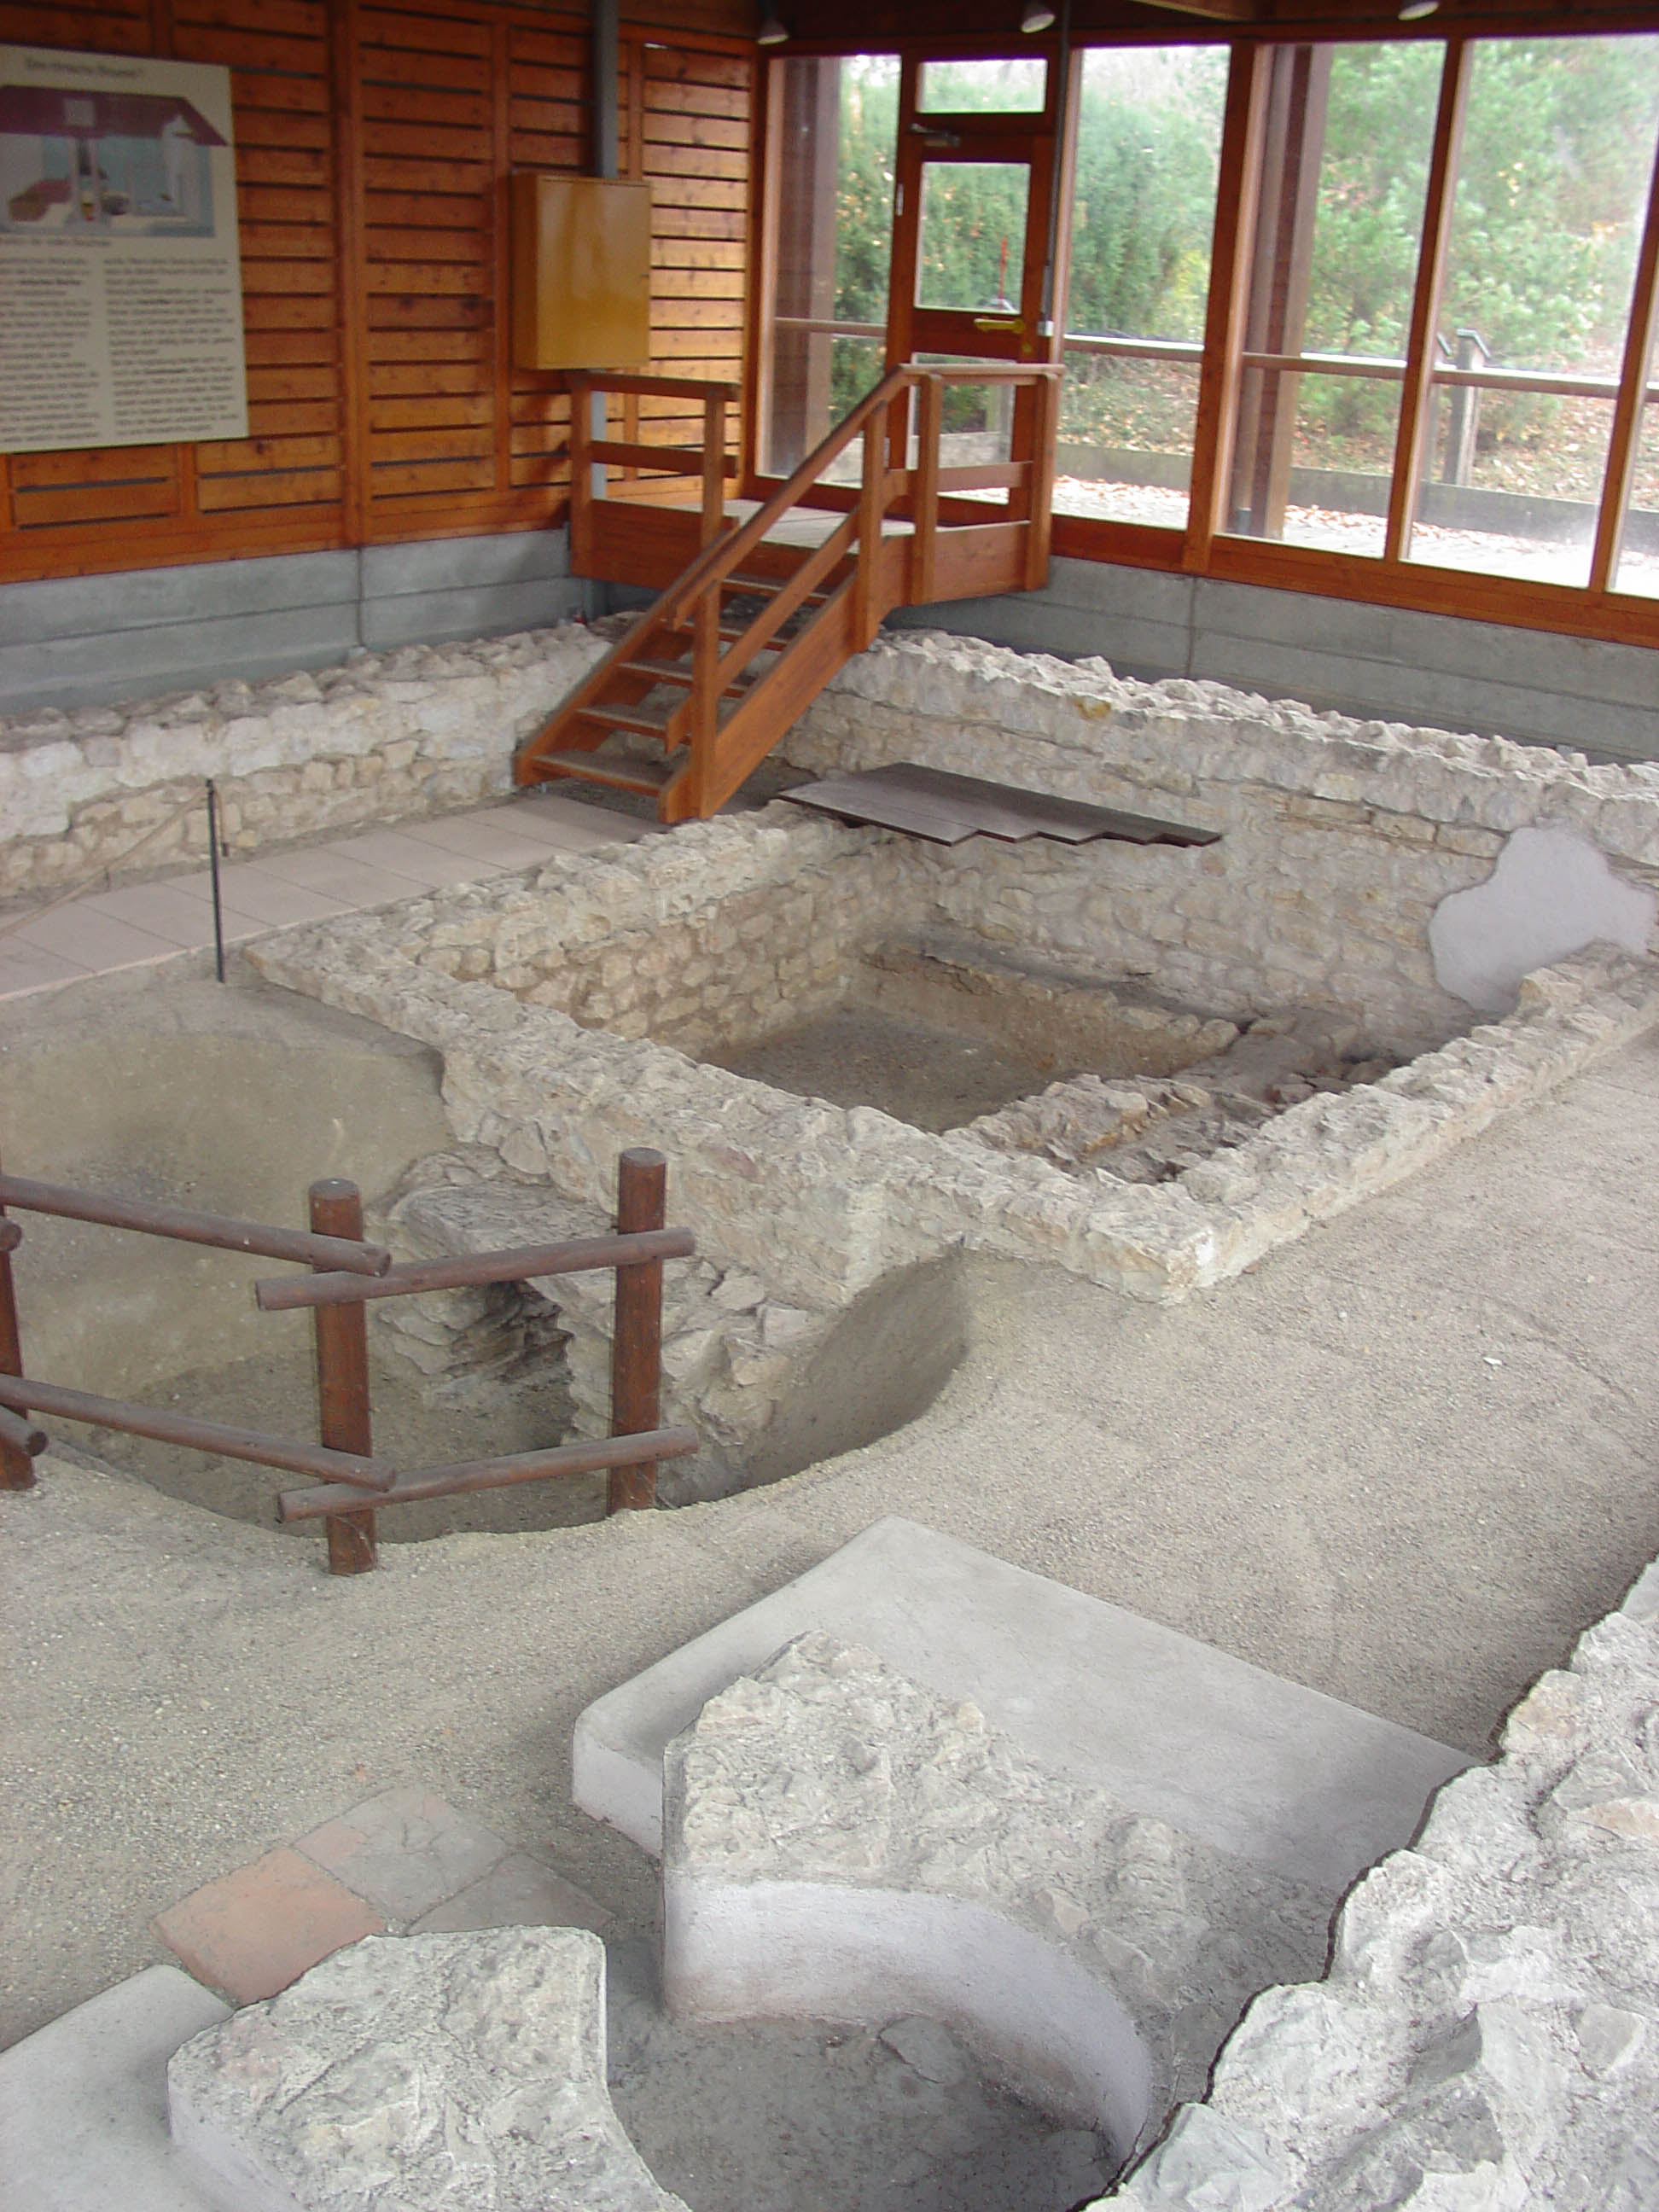 Excavated Roman brewery in Regensburg, Germany